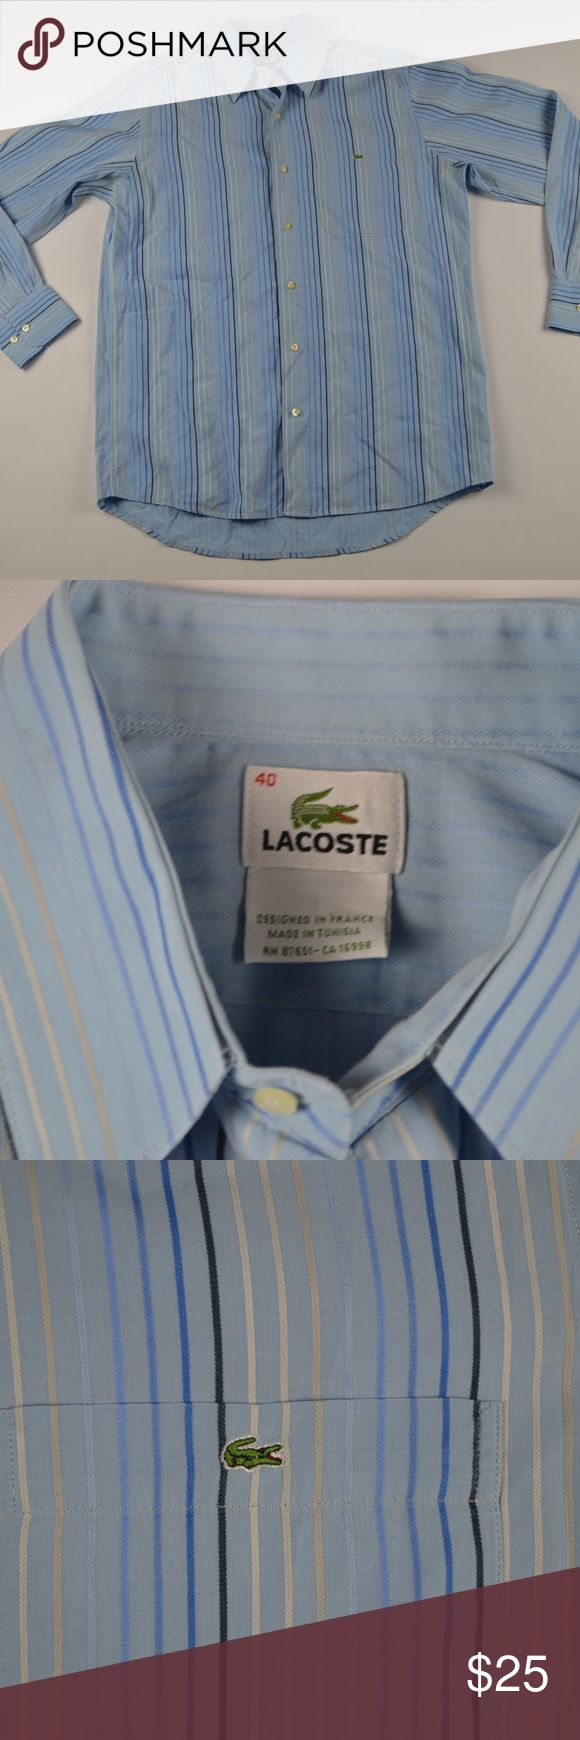 Lacoste Size 40 Blue Striped Dress Shirt Lacoste Dress Shirt  Excellent shirt  Comes from a smoke-free household  The size is 40 and the measurements are 21 inches pit to pit and 32 inches shoulder to base  Blue Striped  Cotton   Check out my other items for sale in my store!  A6 Lacoste Shirts Dress Shirts